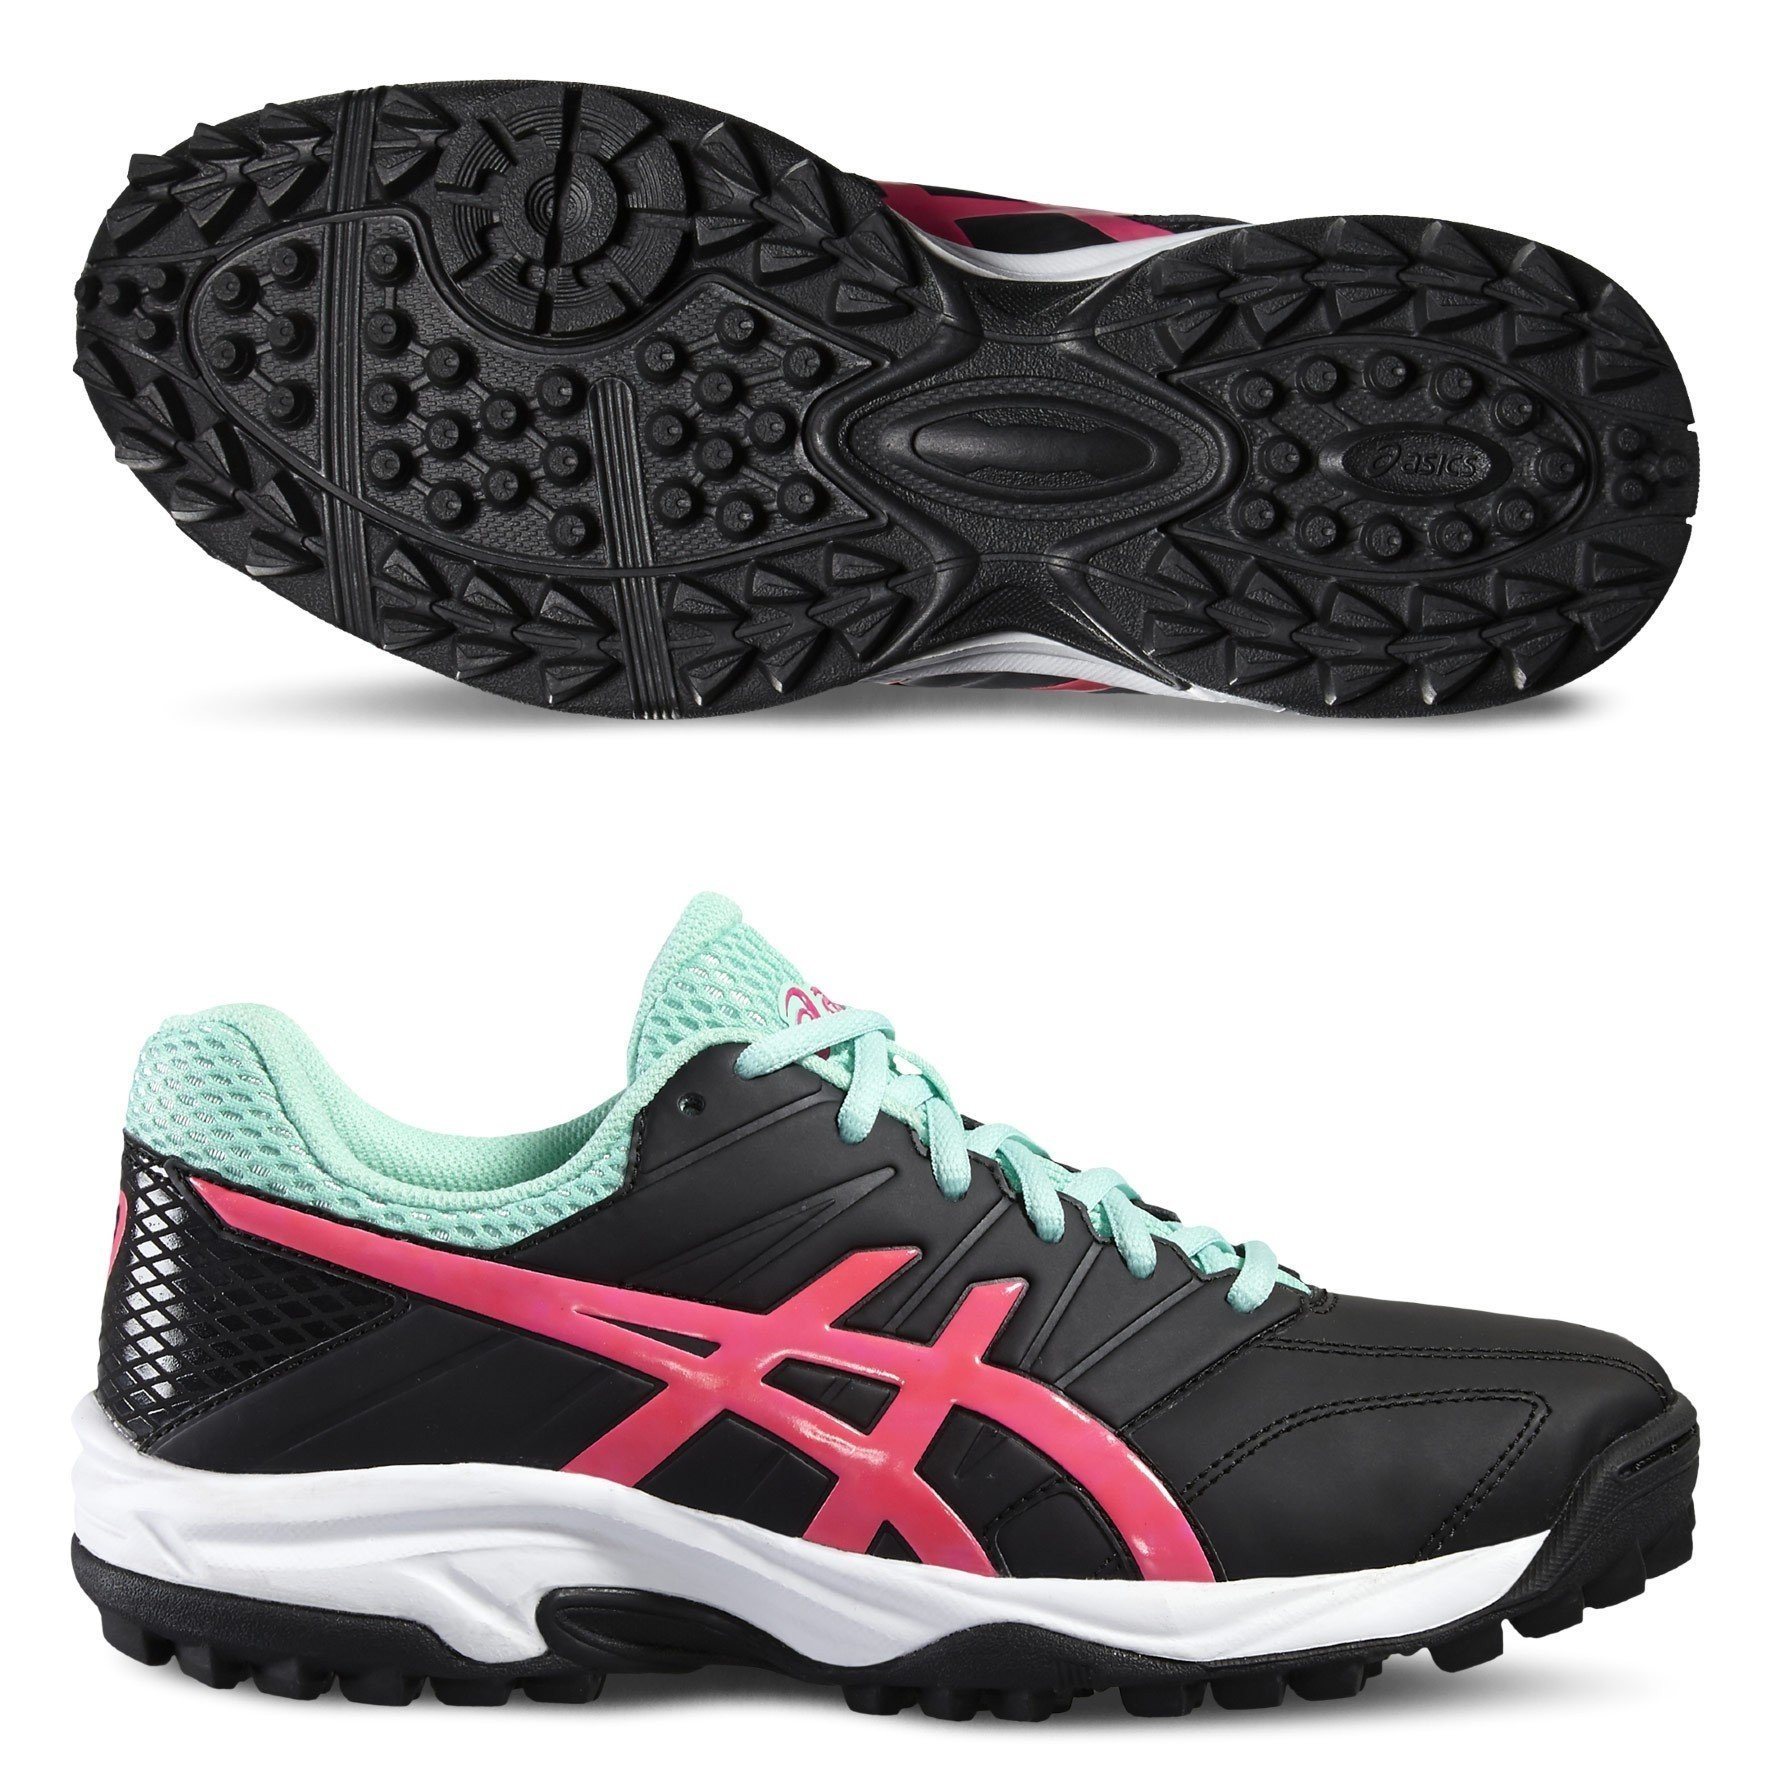 2014/15 Asics Gel-Lethal MP7